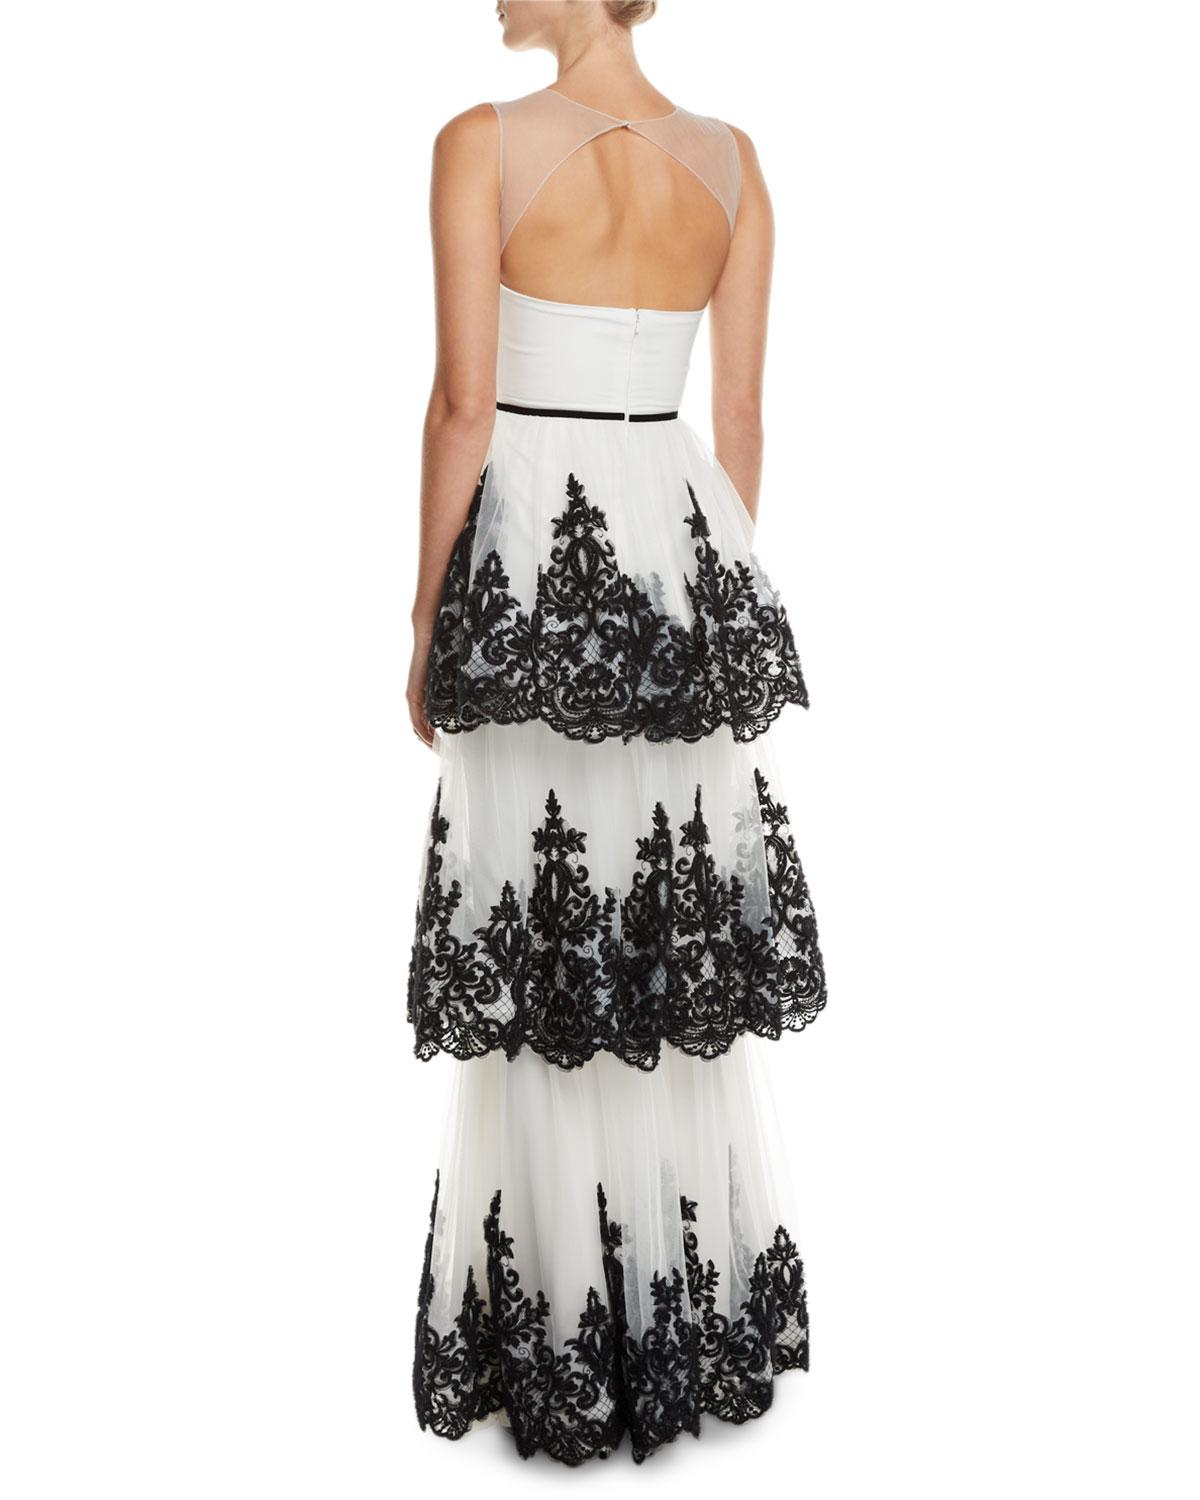 939f54bacec Lyst - Marchesa notte Embroidered 3-tier Strapless Gown in White